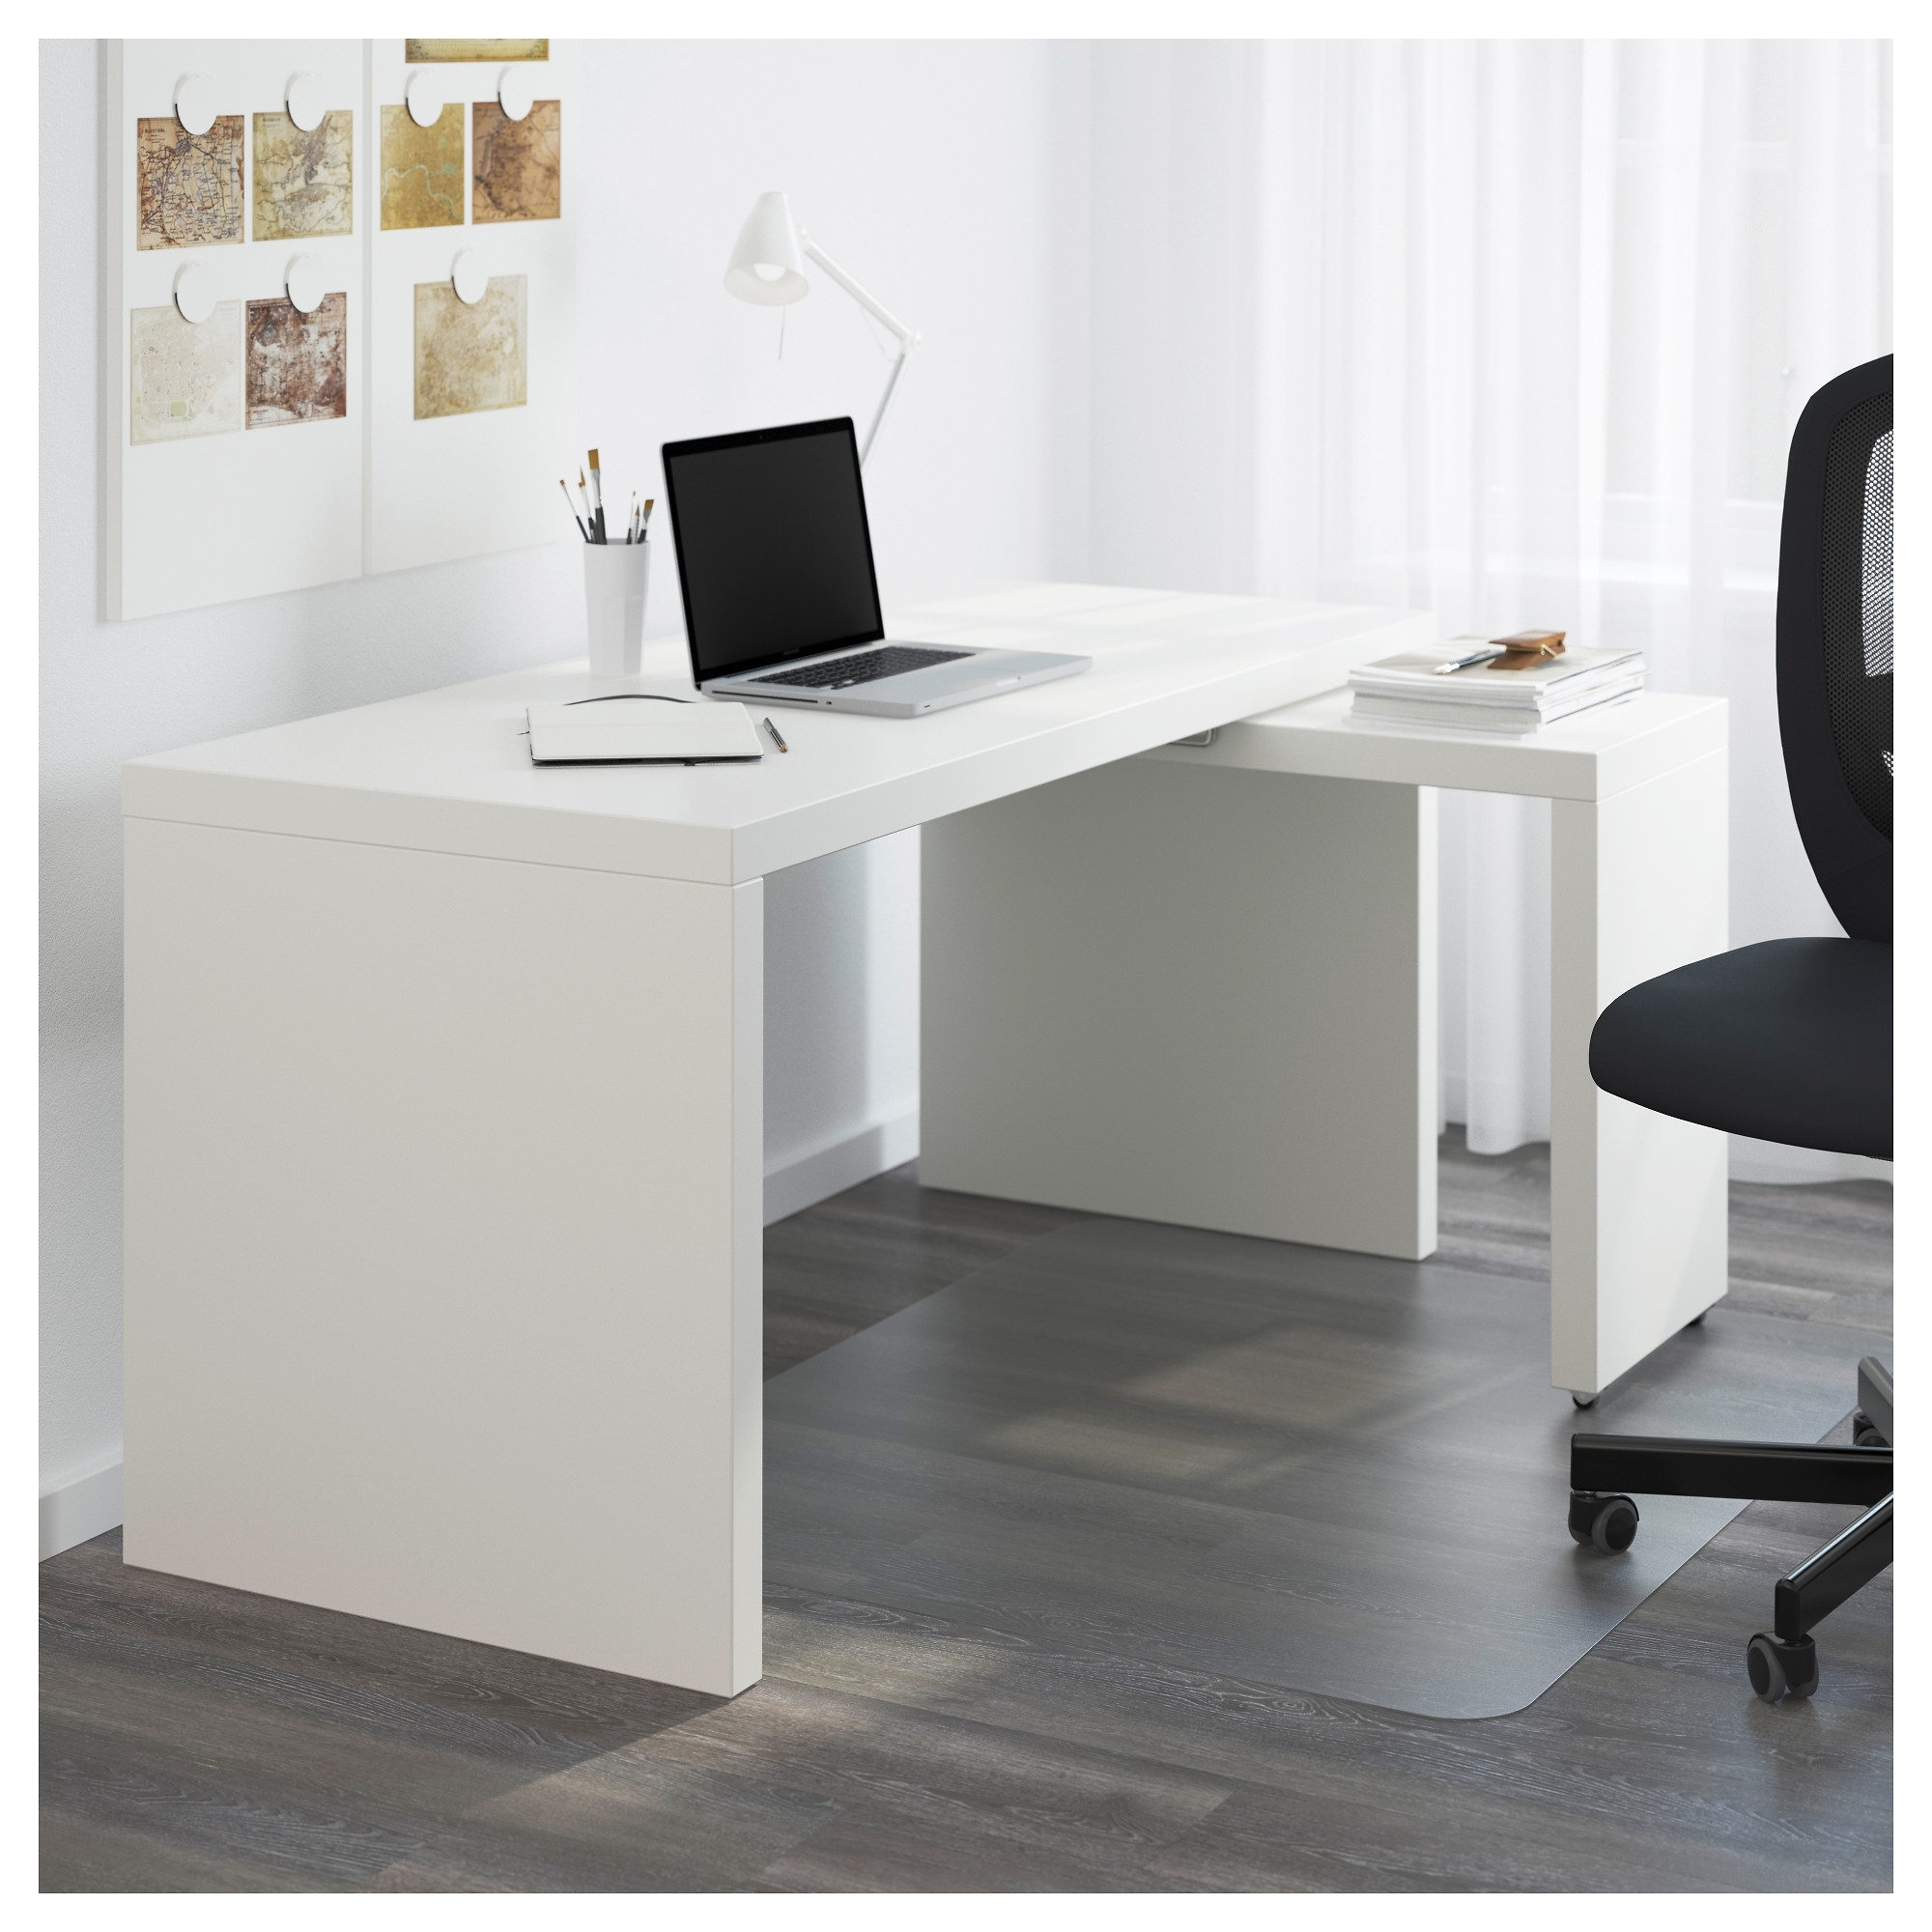 Well Liked Computer Desks At Ikea Pertaining To Malm Desk With Pull Out Panel – Black Brown – Ikea (View 20 of 20)